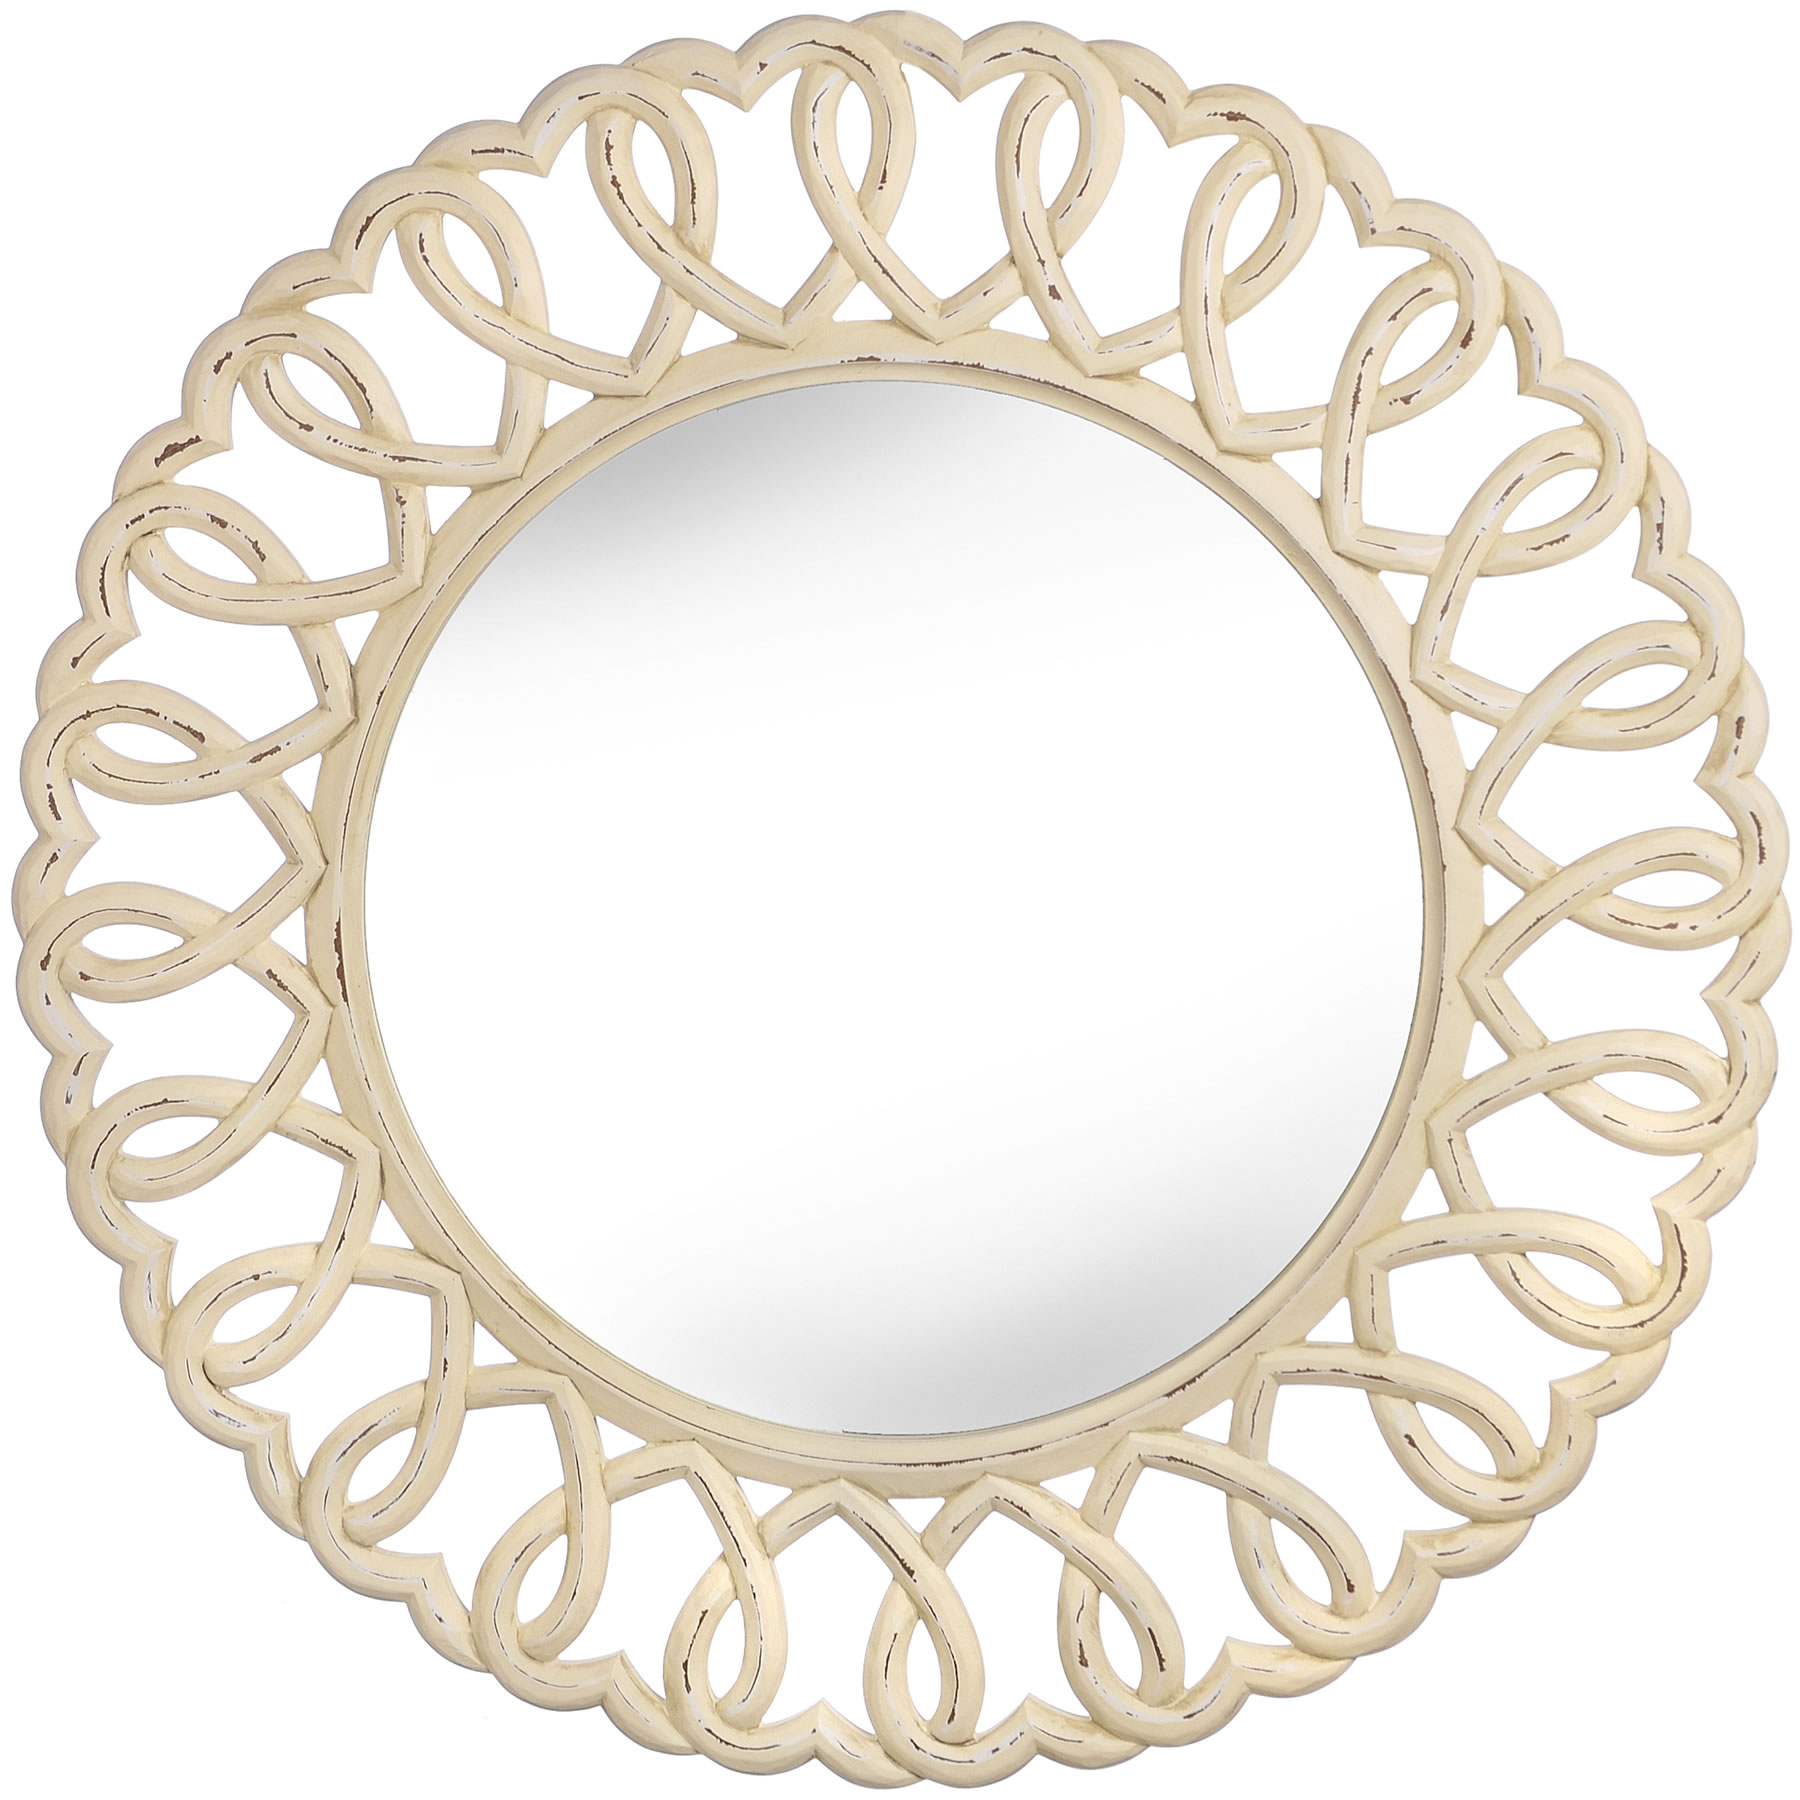 Large Wall Mirrors For Bedroom Olivia Heart Wall Mirror Stunning Large Mirror 90cm Round Wall